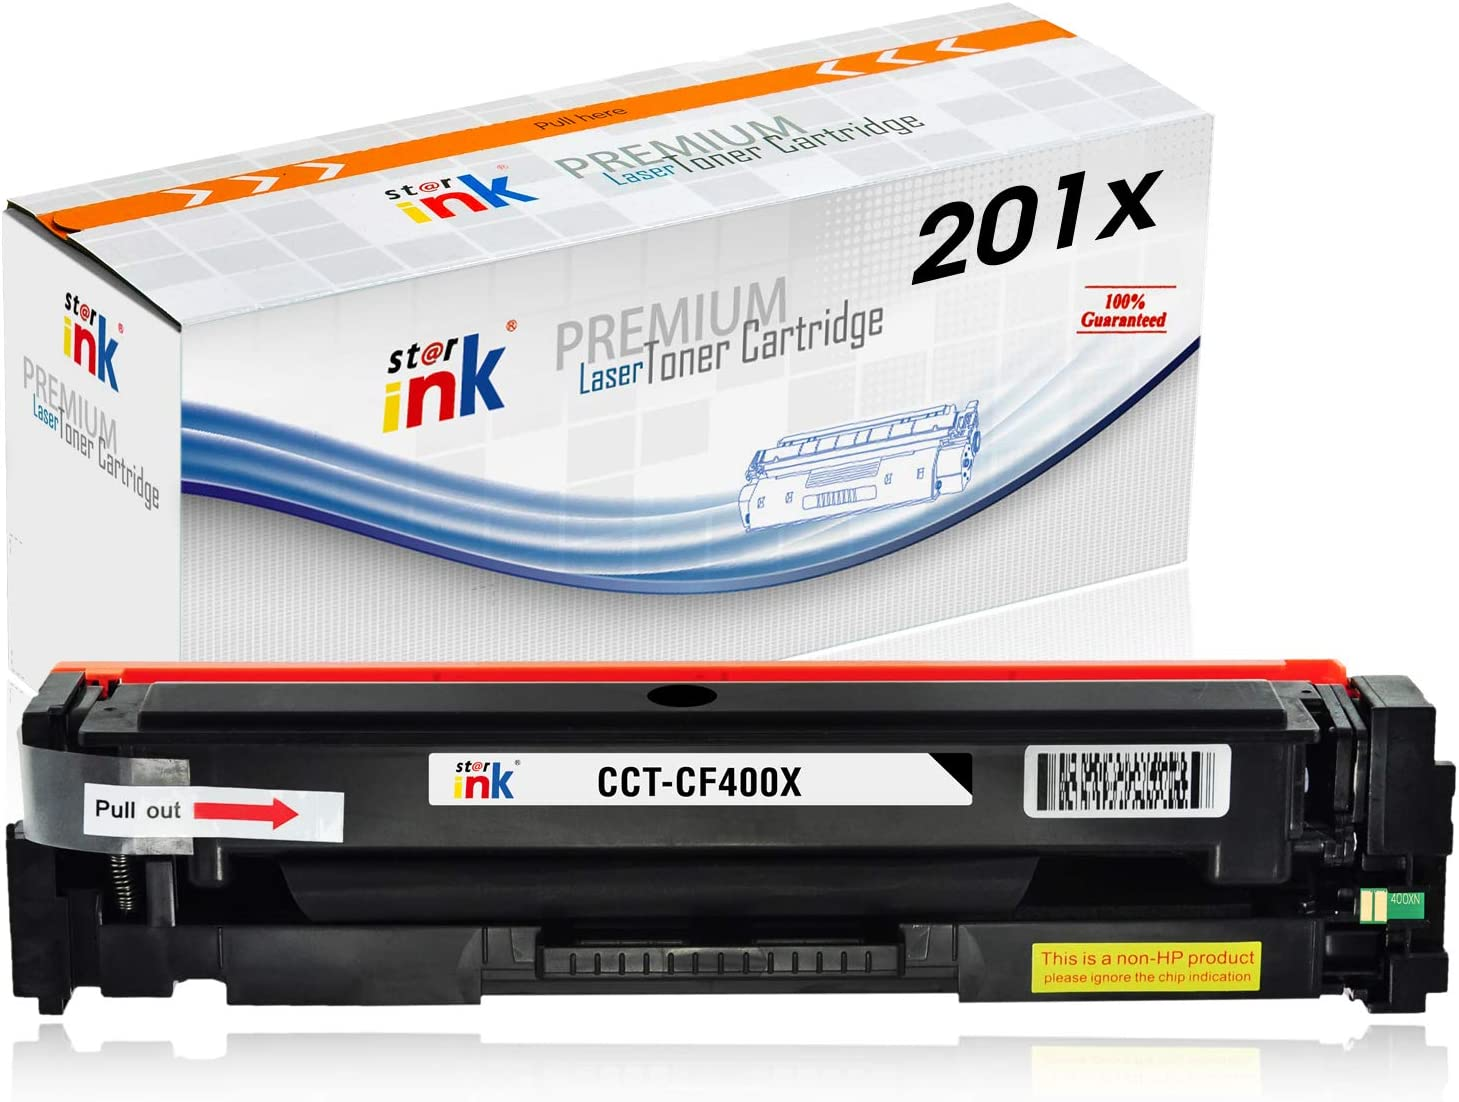 Starink CF400X Compatible Toner Cartridge Replacement for HP 201X 201A CF400A Black Work with Color Laserjet Pro MFP M277dw M252dw M252n M277c6 M277n M274n M277 M252 Printer, 1 Pack